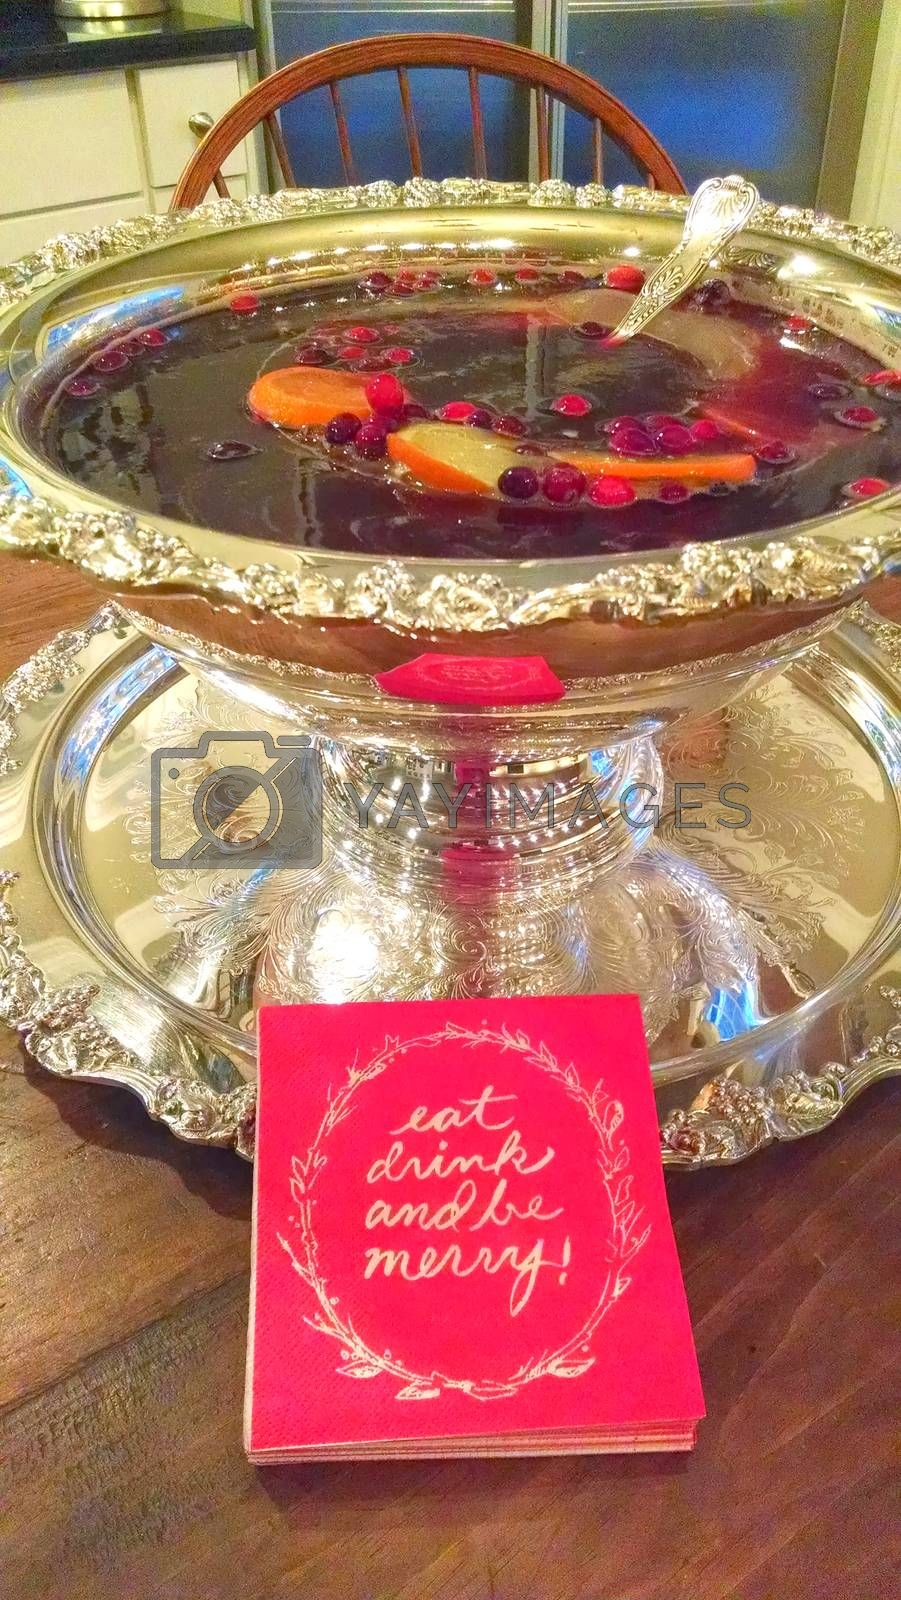 Christmas cocktail punch in Silver holiday serving bowl eat drink be merry